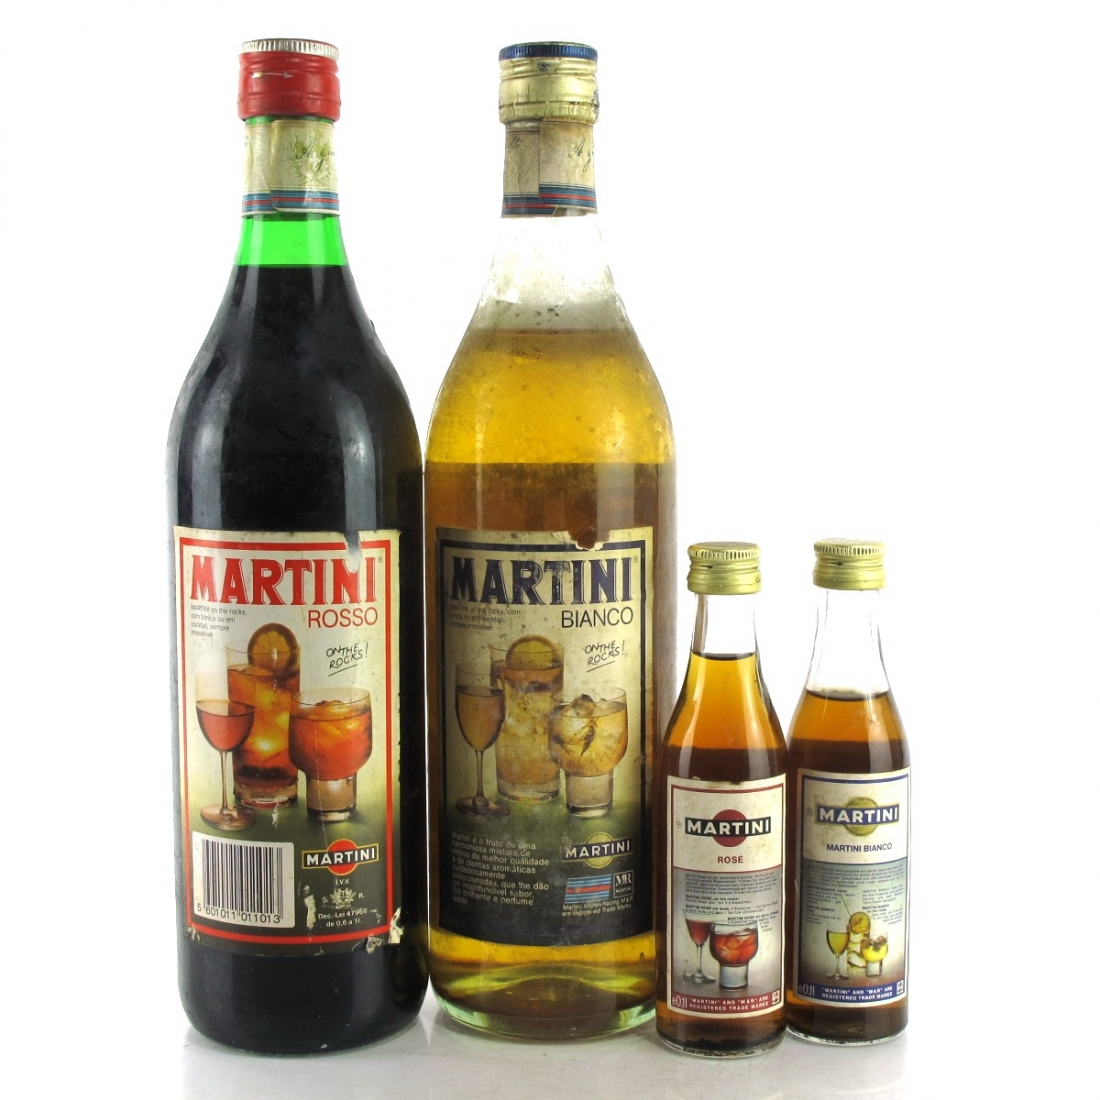 Martini Bianco & Rosso Vermouth 2 x 1 Litre 1980s / with 2 x 10cl